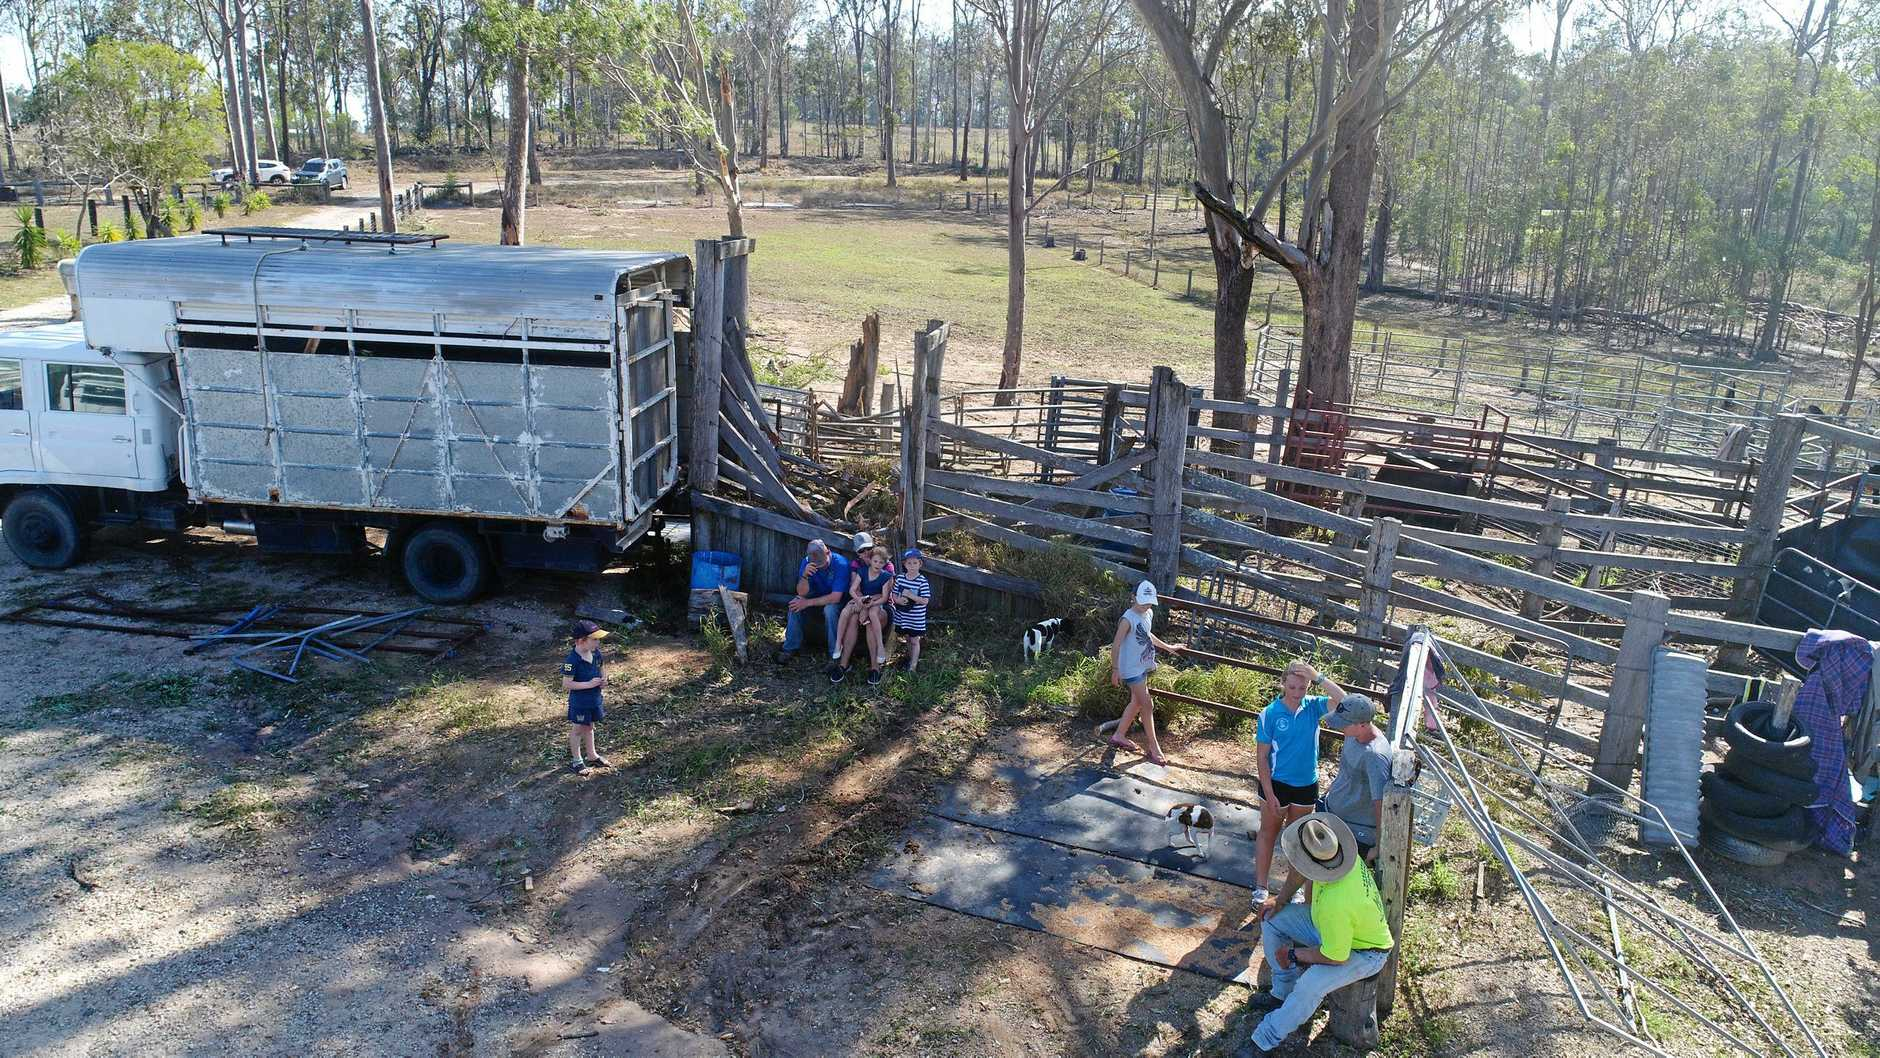 Aerial footage shows the destruction caused after a strong microburst tore through the Gympie region yesterday (Saturday afternoon), bringing down trees, damaging a shed and fences. This photo was taken at a Harvey Siding Road property.